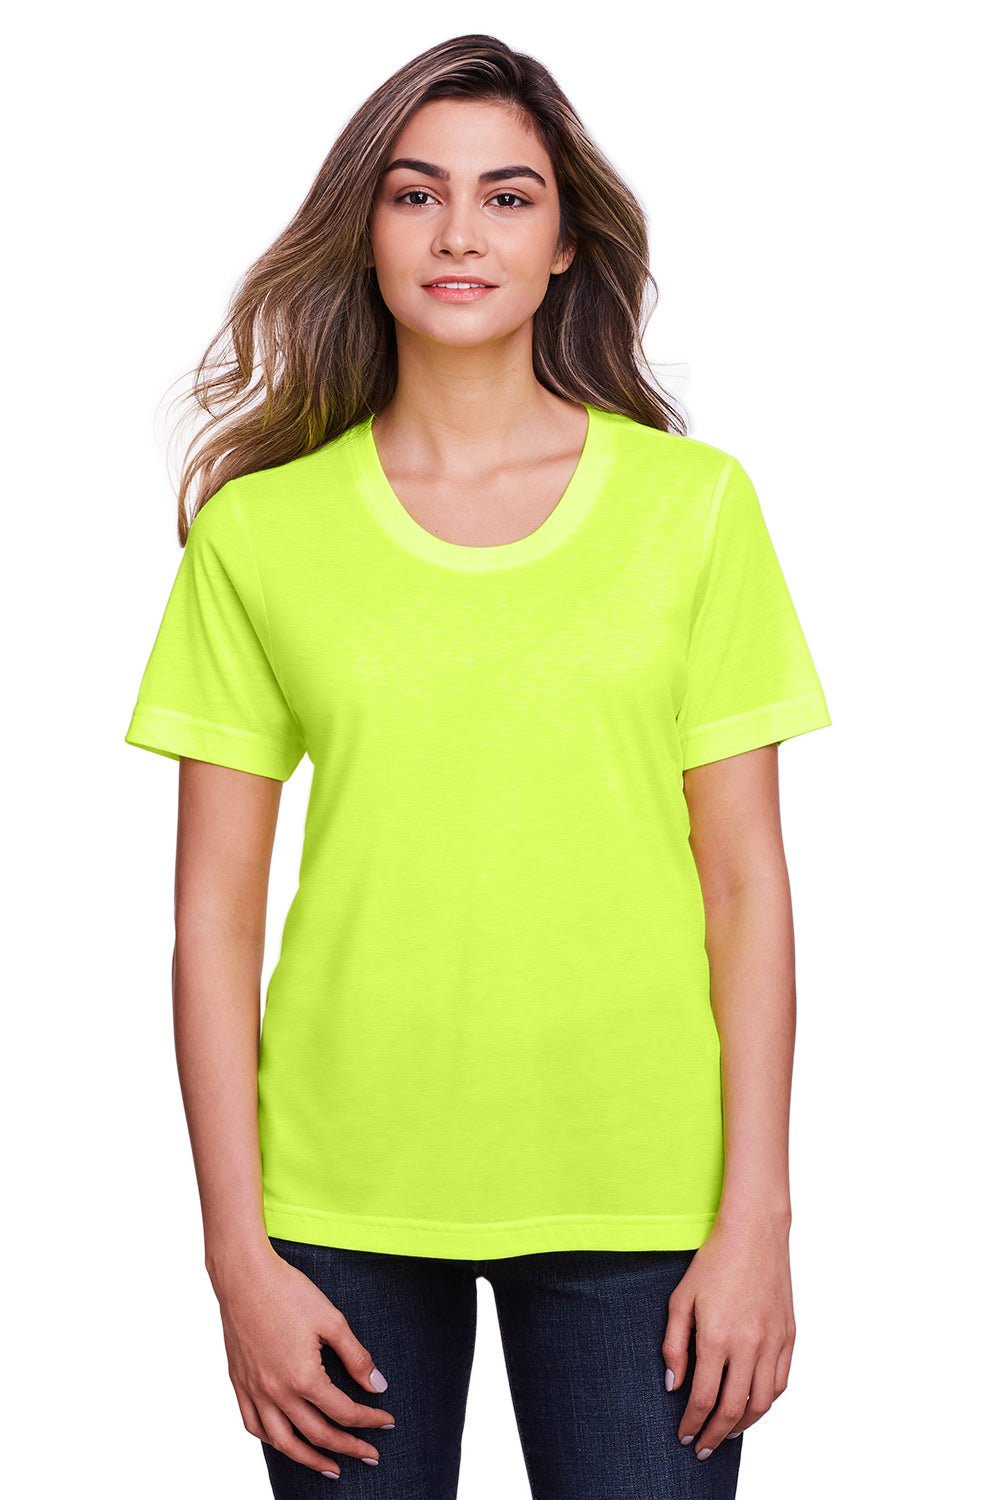 Core 365 CE111W Womens Fusion ChromaSoft Performance Moisture Wicking Short Sleeve Scoop Neck T-Shirt Safety Yellow Front